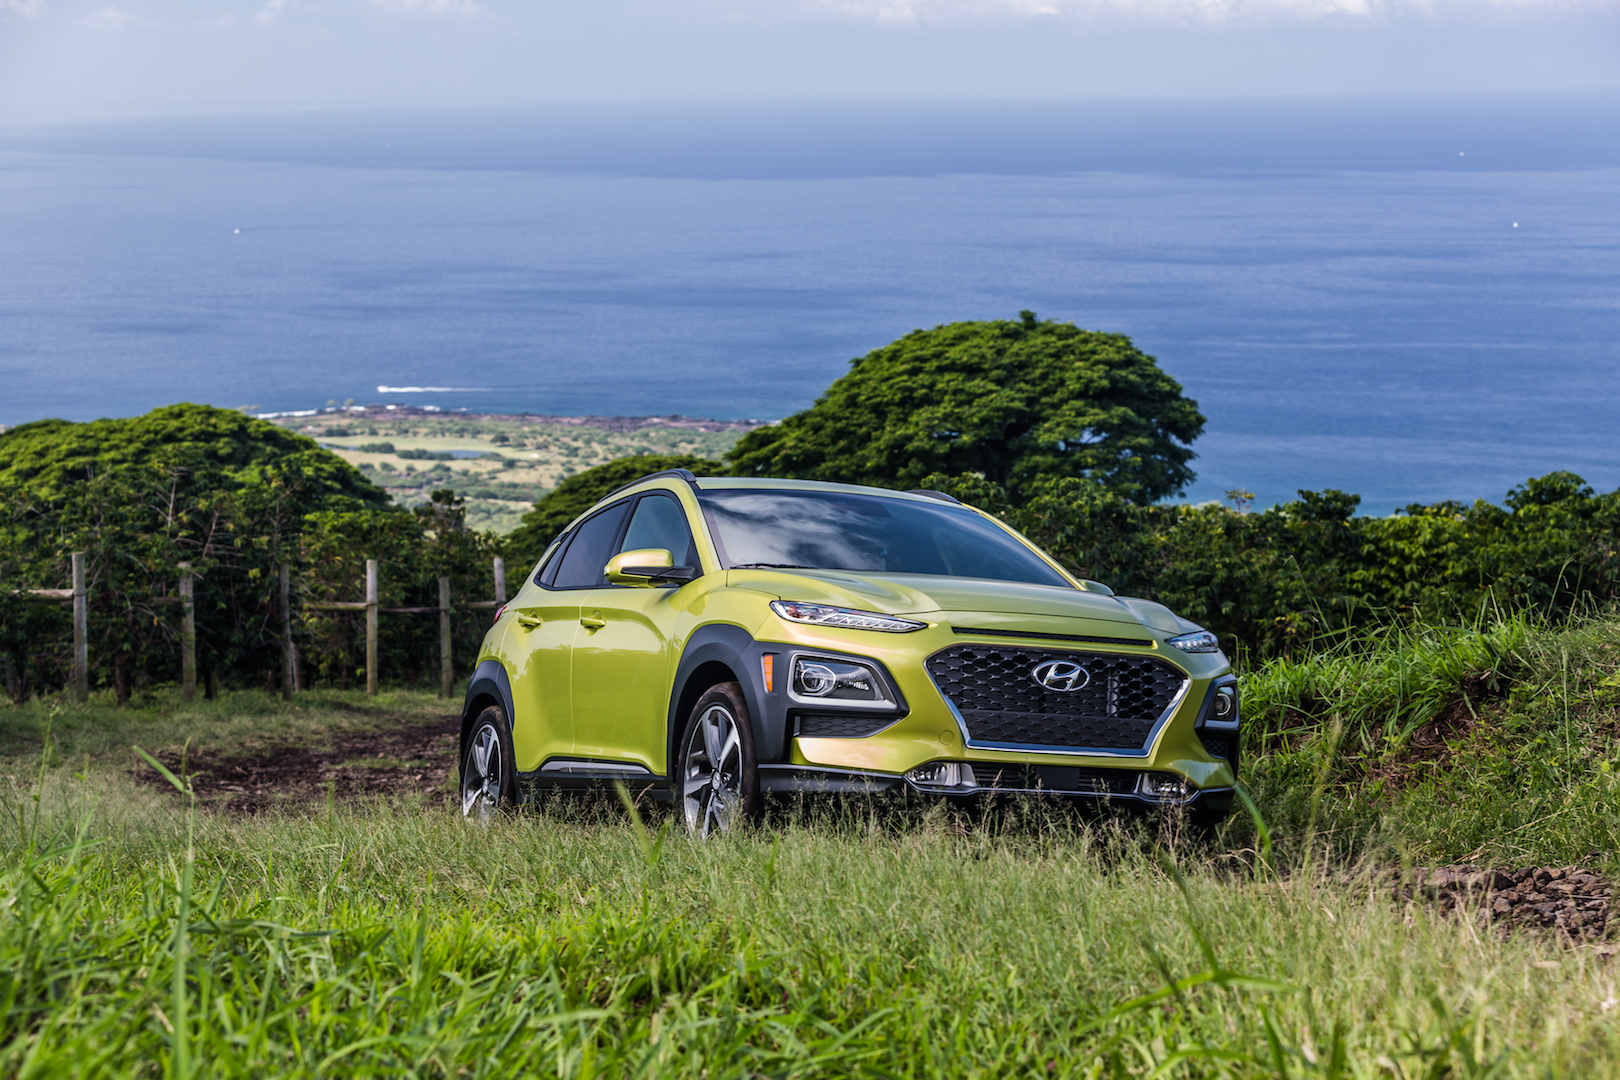 2019 Hyundai Kona Review, Ratings, Specs, Prices, and Photos